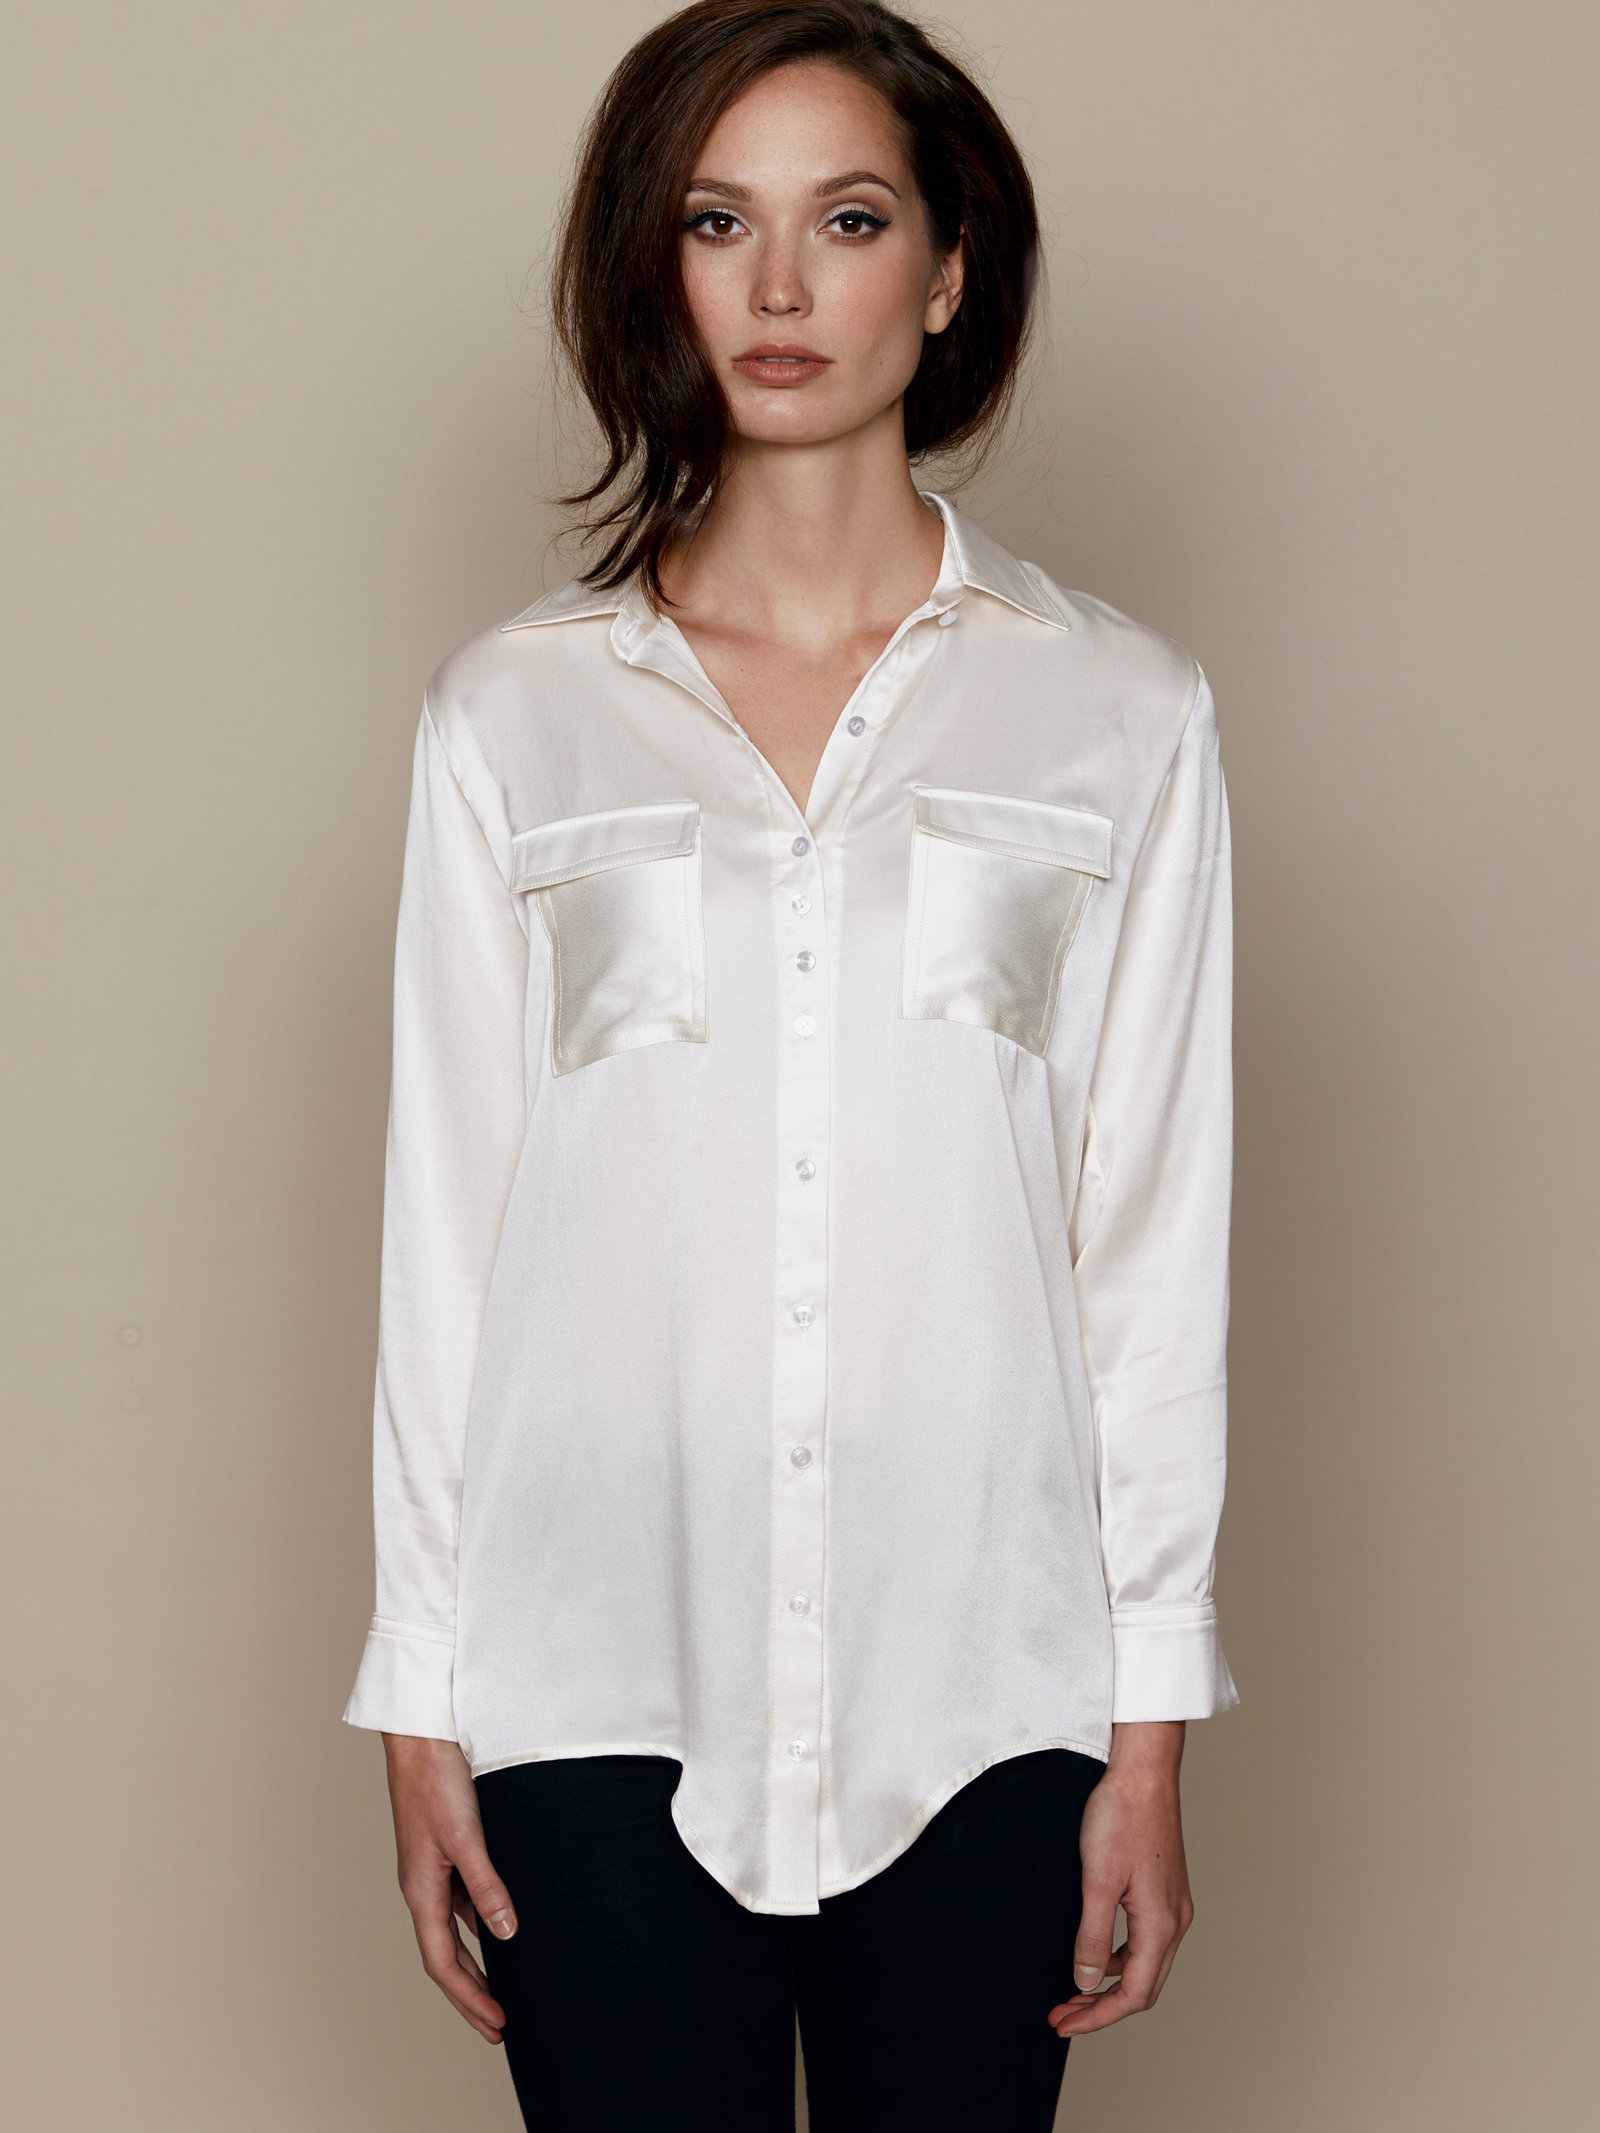 Hilary MacMillan Black Boyfriend Blouse